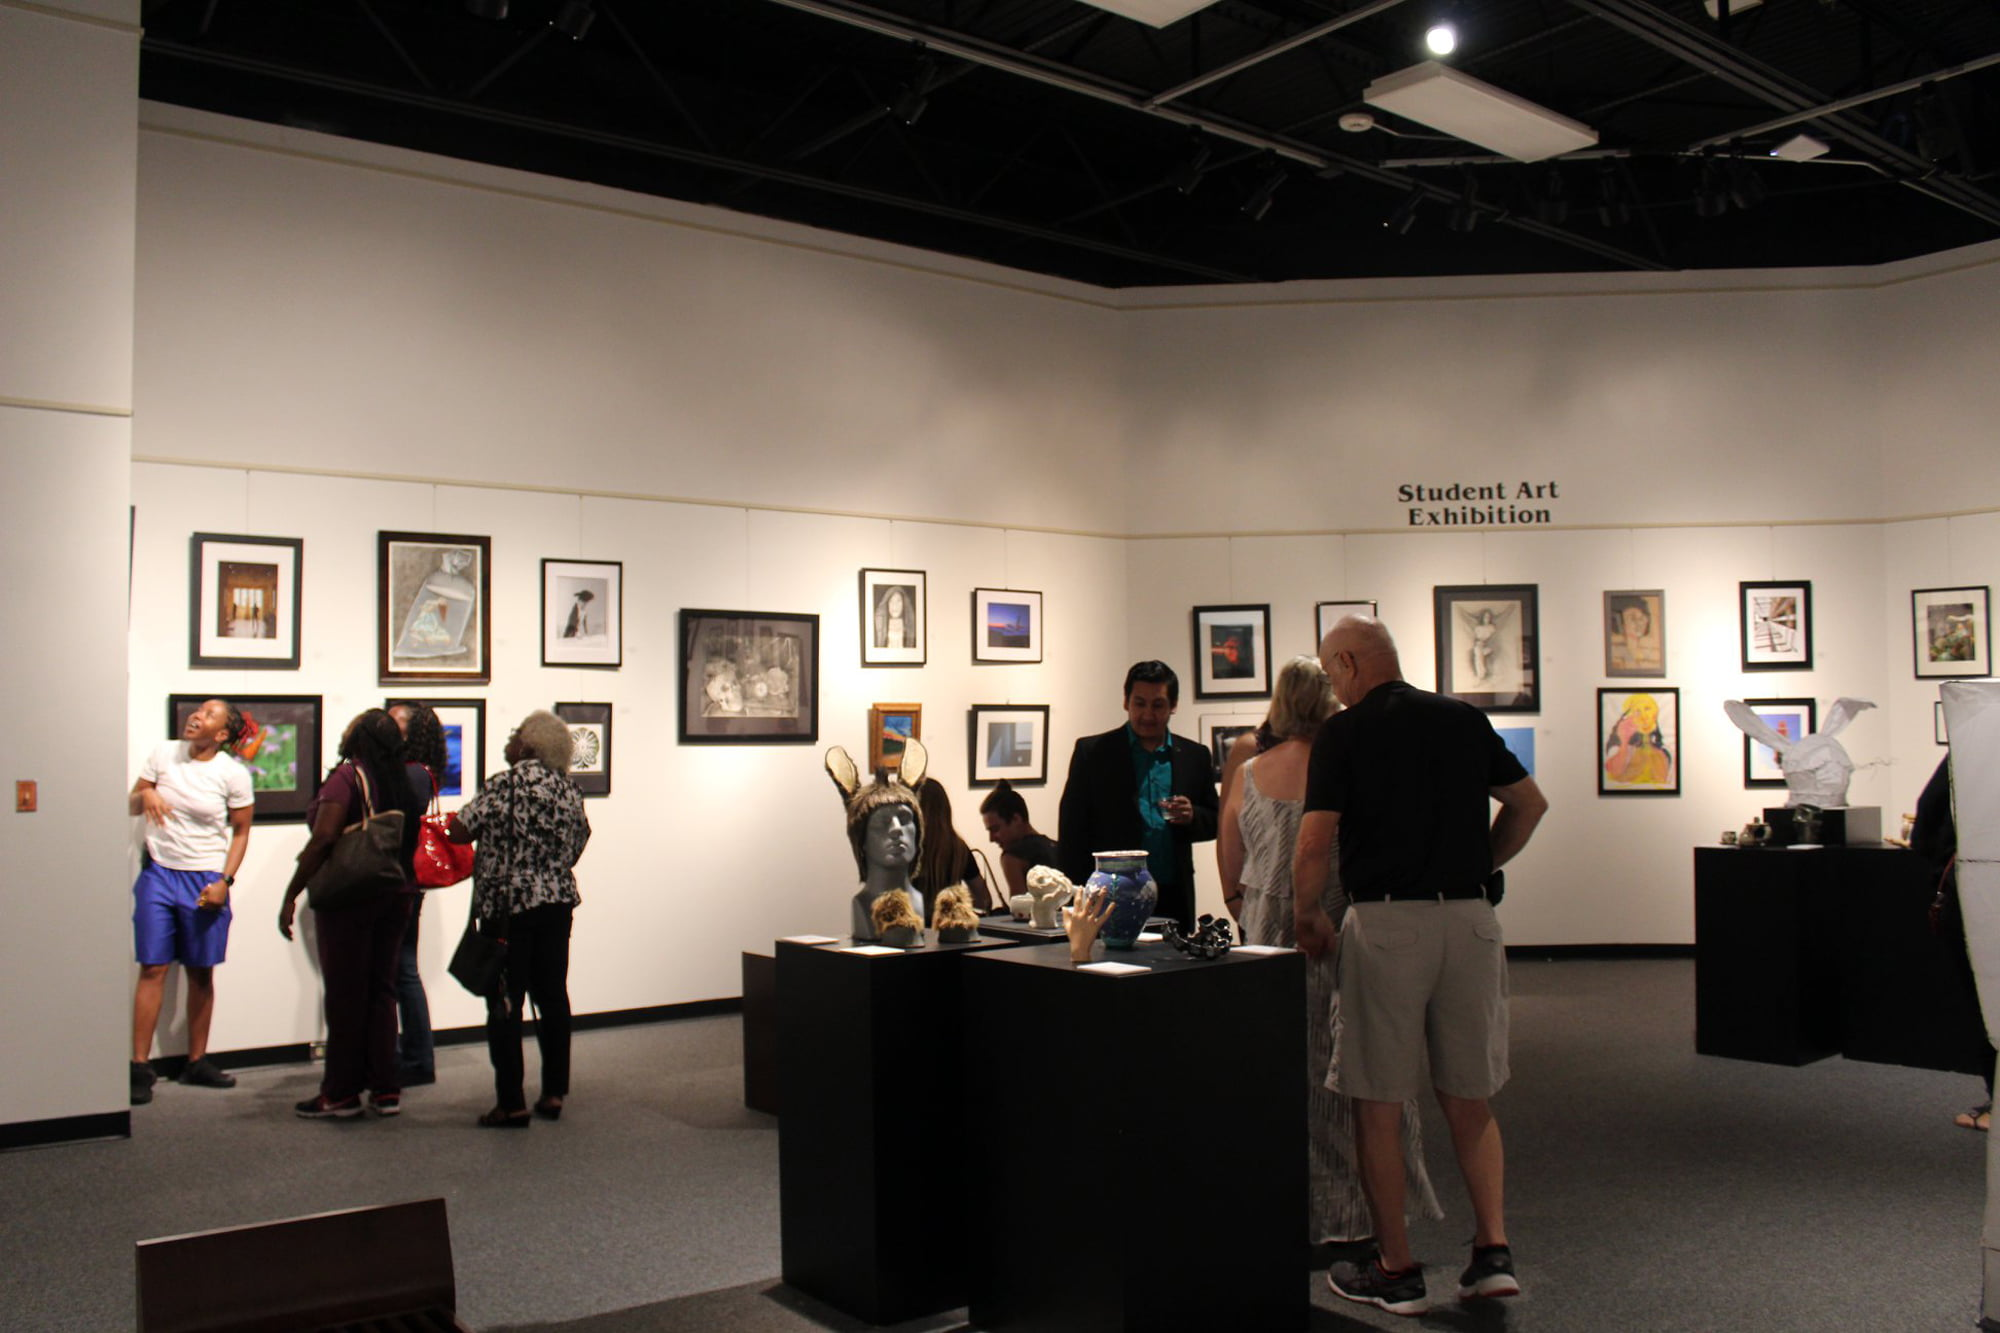 Visitors looking at art during Student Art Exhibition at Polk State College Lakeland Art Gallery.